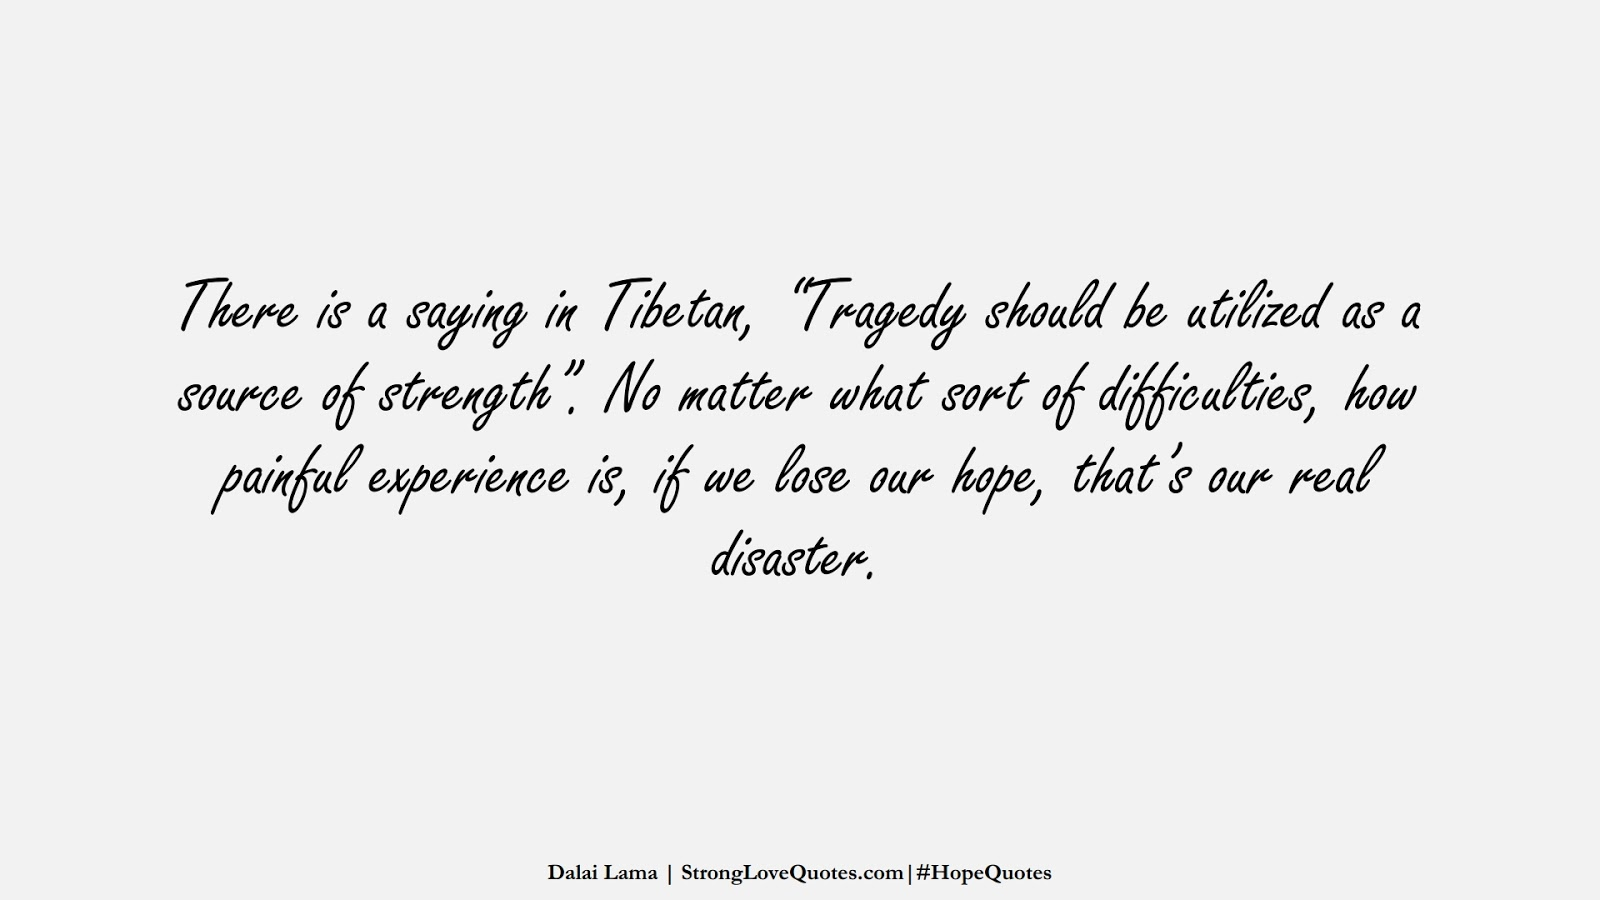 """There is a saying in Tibetan, """"Tragedy should be utilized as a source of strength"""". No matter what sort of difficulties, how painful experience is, if we lose our hope, that's our real disaster. (Dalai Lama);  #HopeQuotes"""